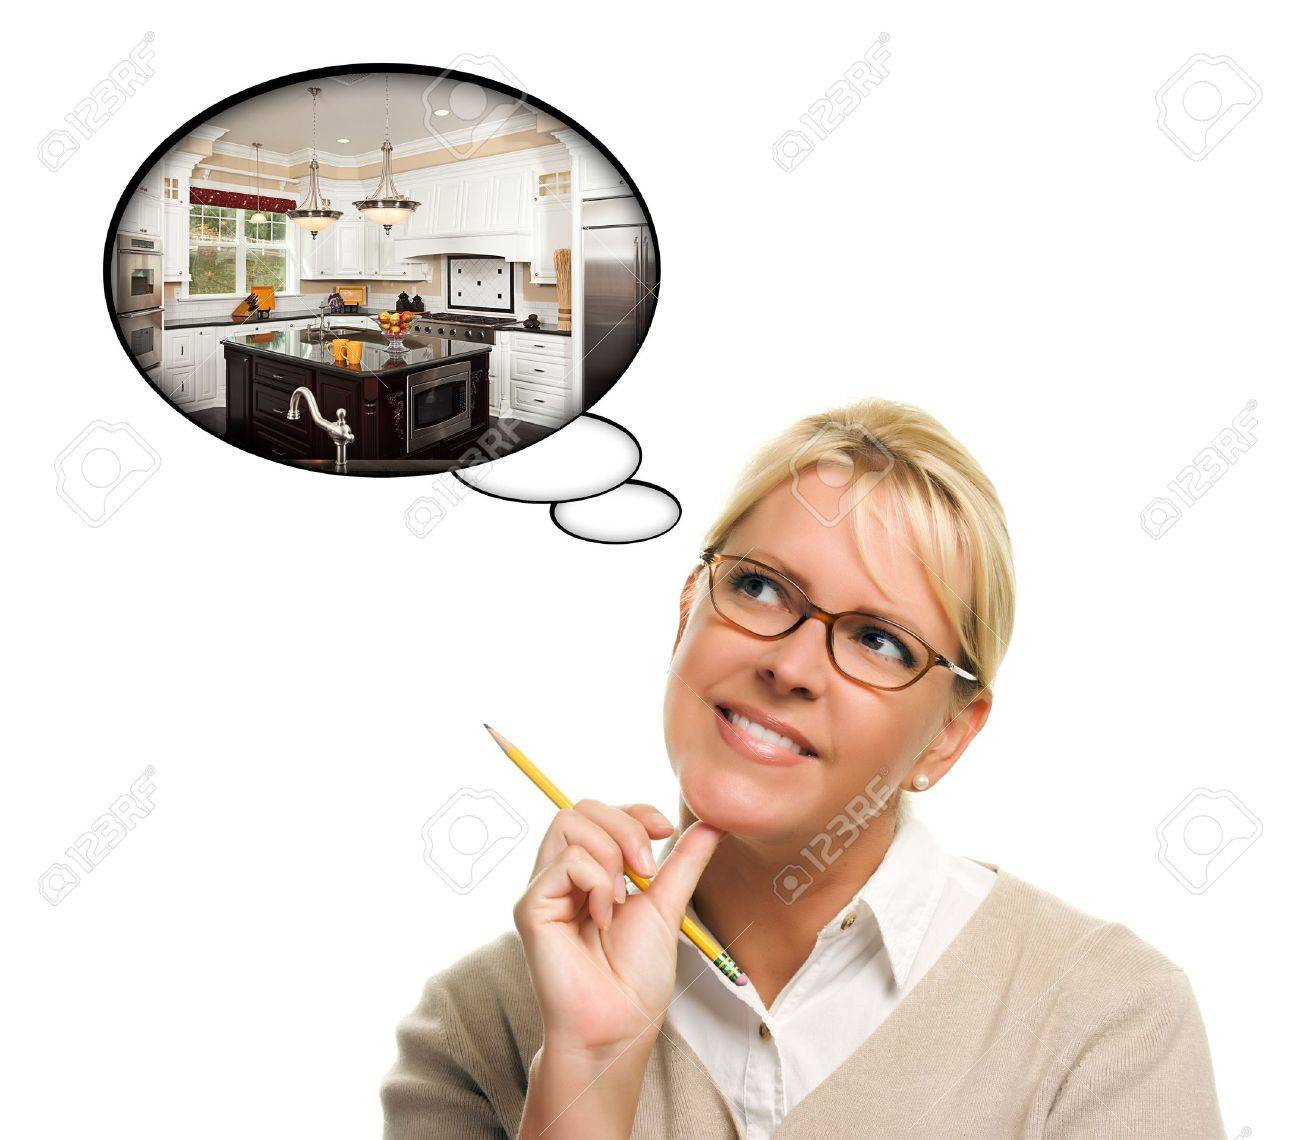 Woman with Thought Bubbles of a New Kitchen Design Isolated on a White Background. Stock Photo - 7872975